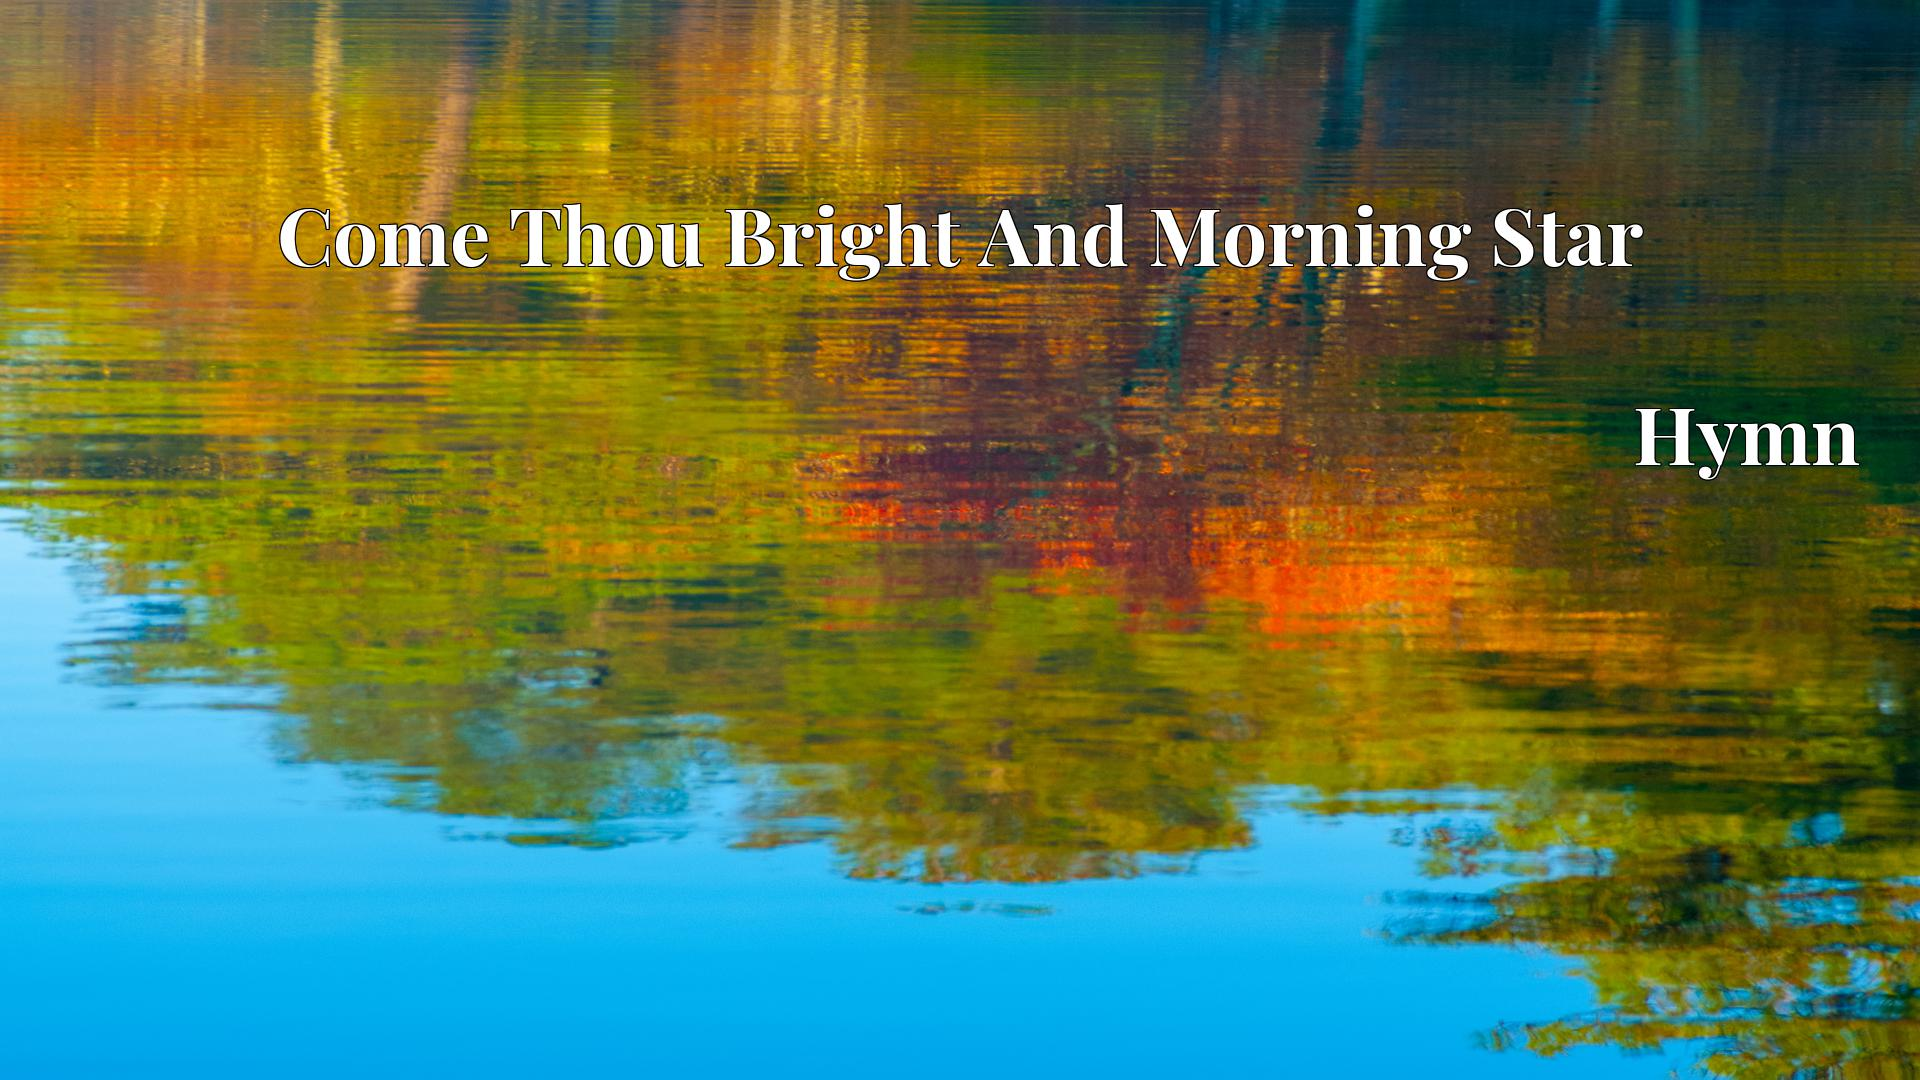 Come Thou Bright And Morning Star - Hymn